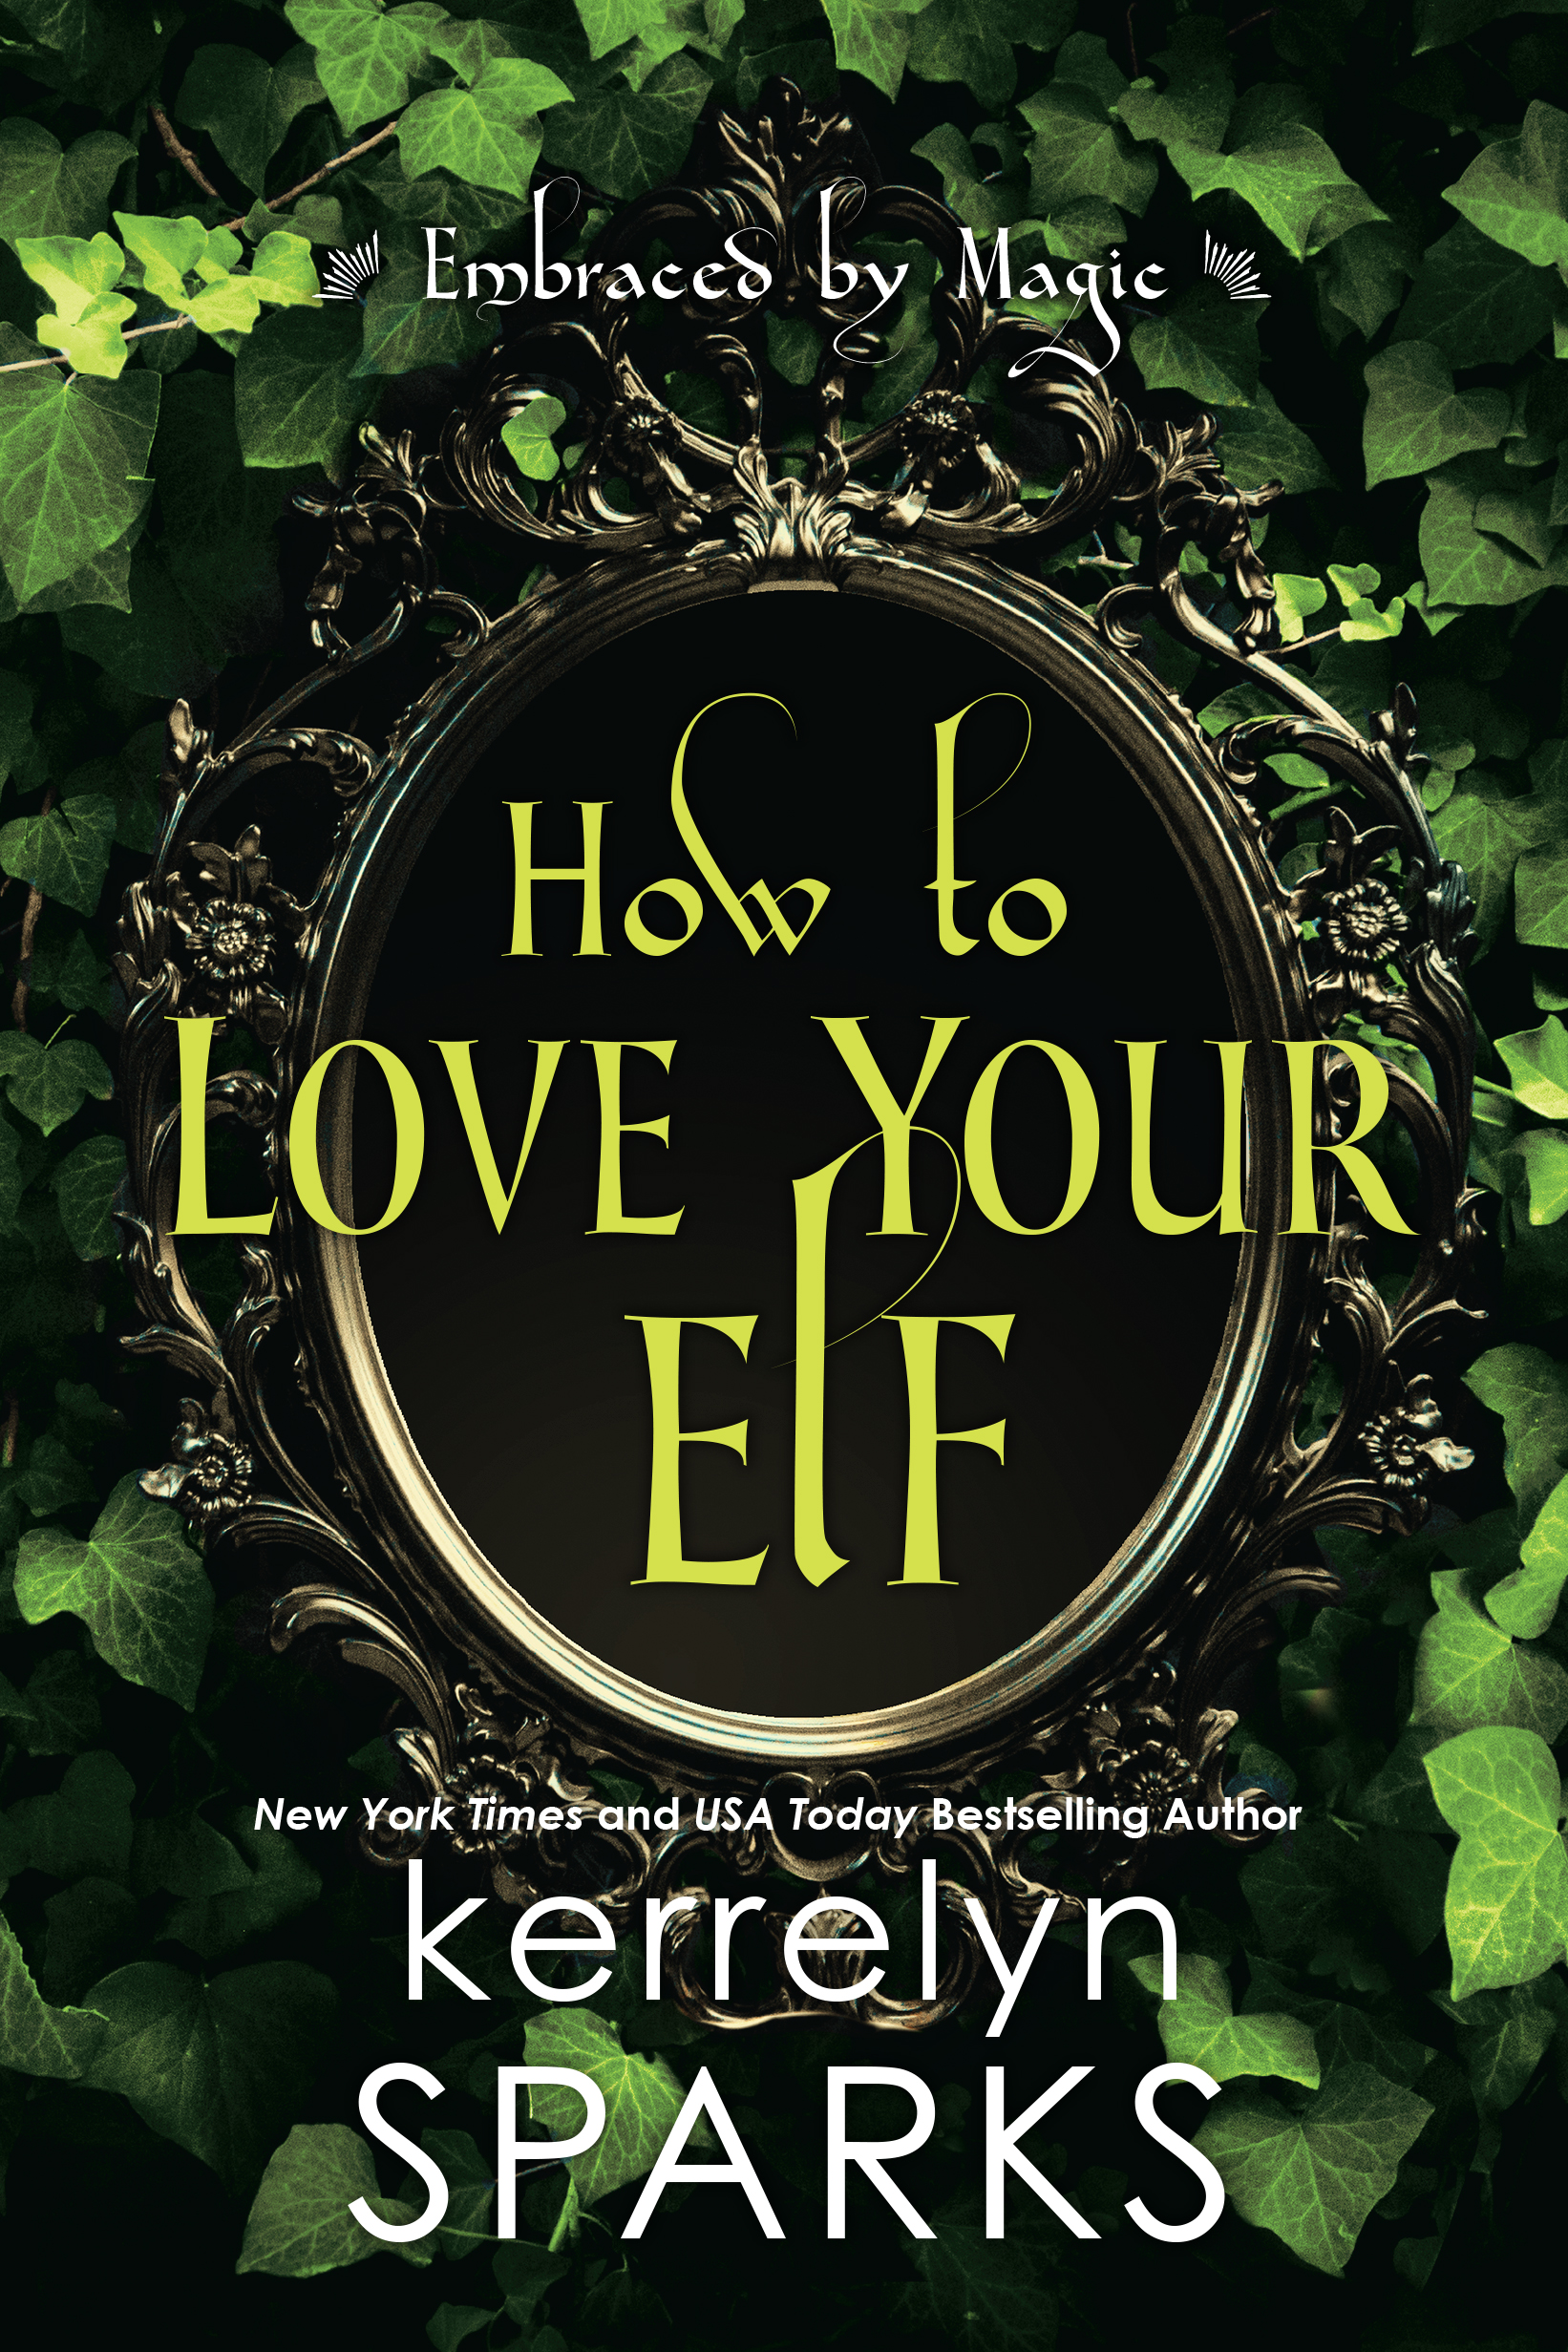 How to love your elf_TRD_FINAL